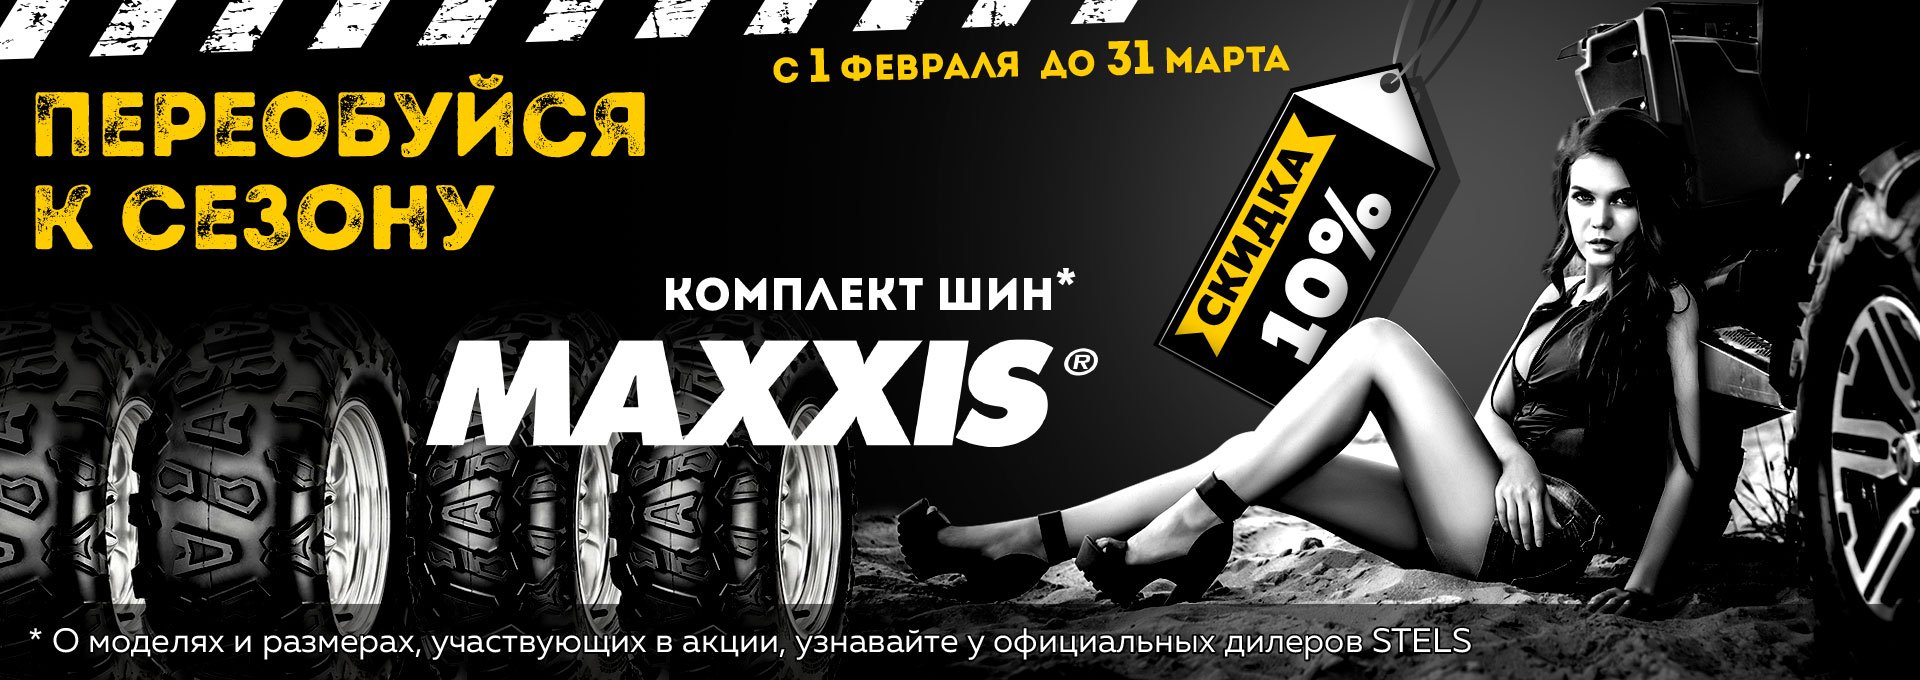 maxxis-final